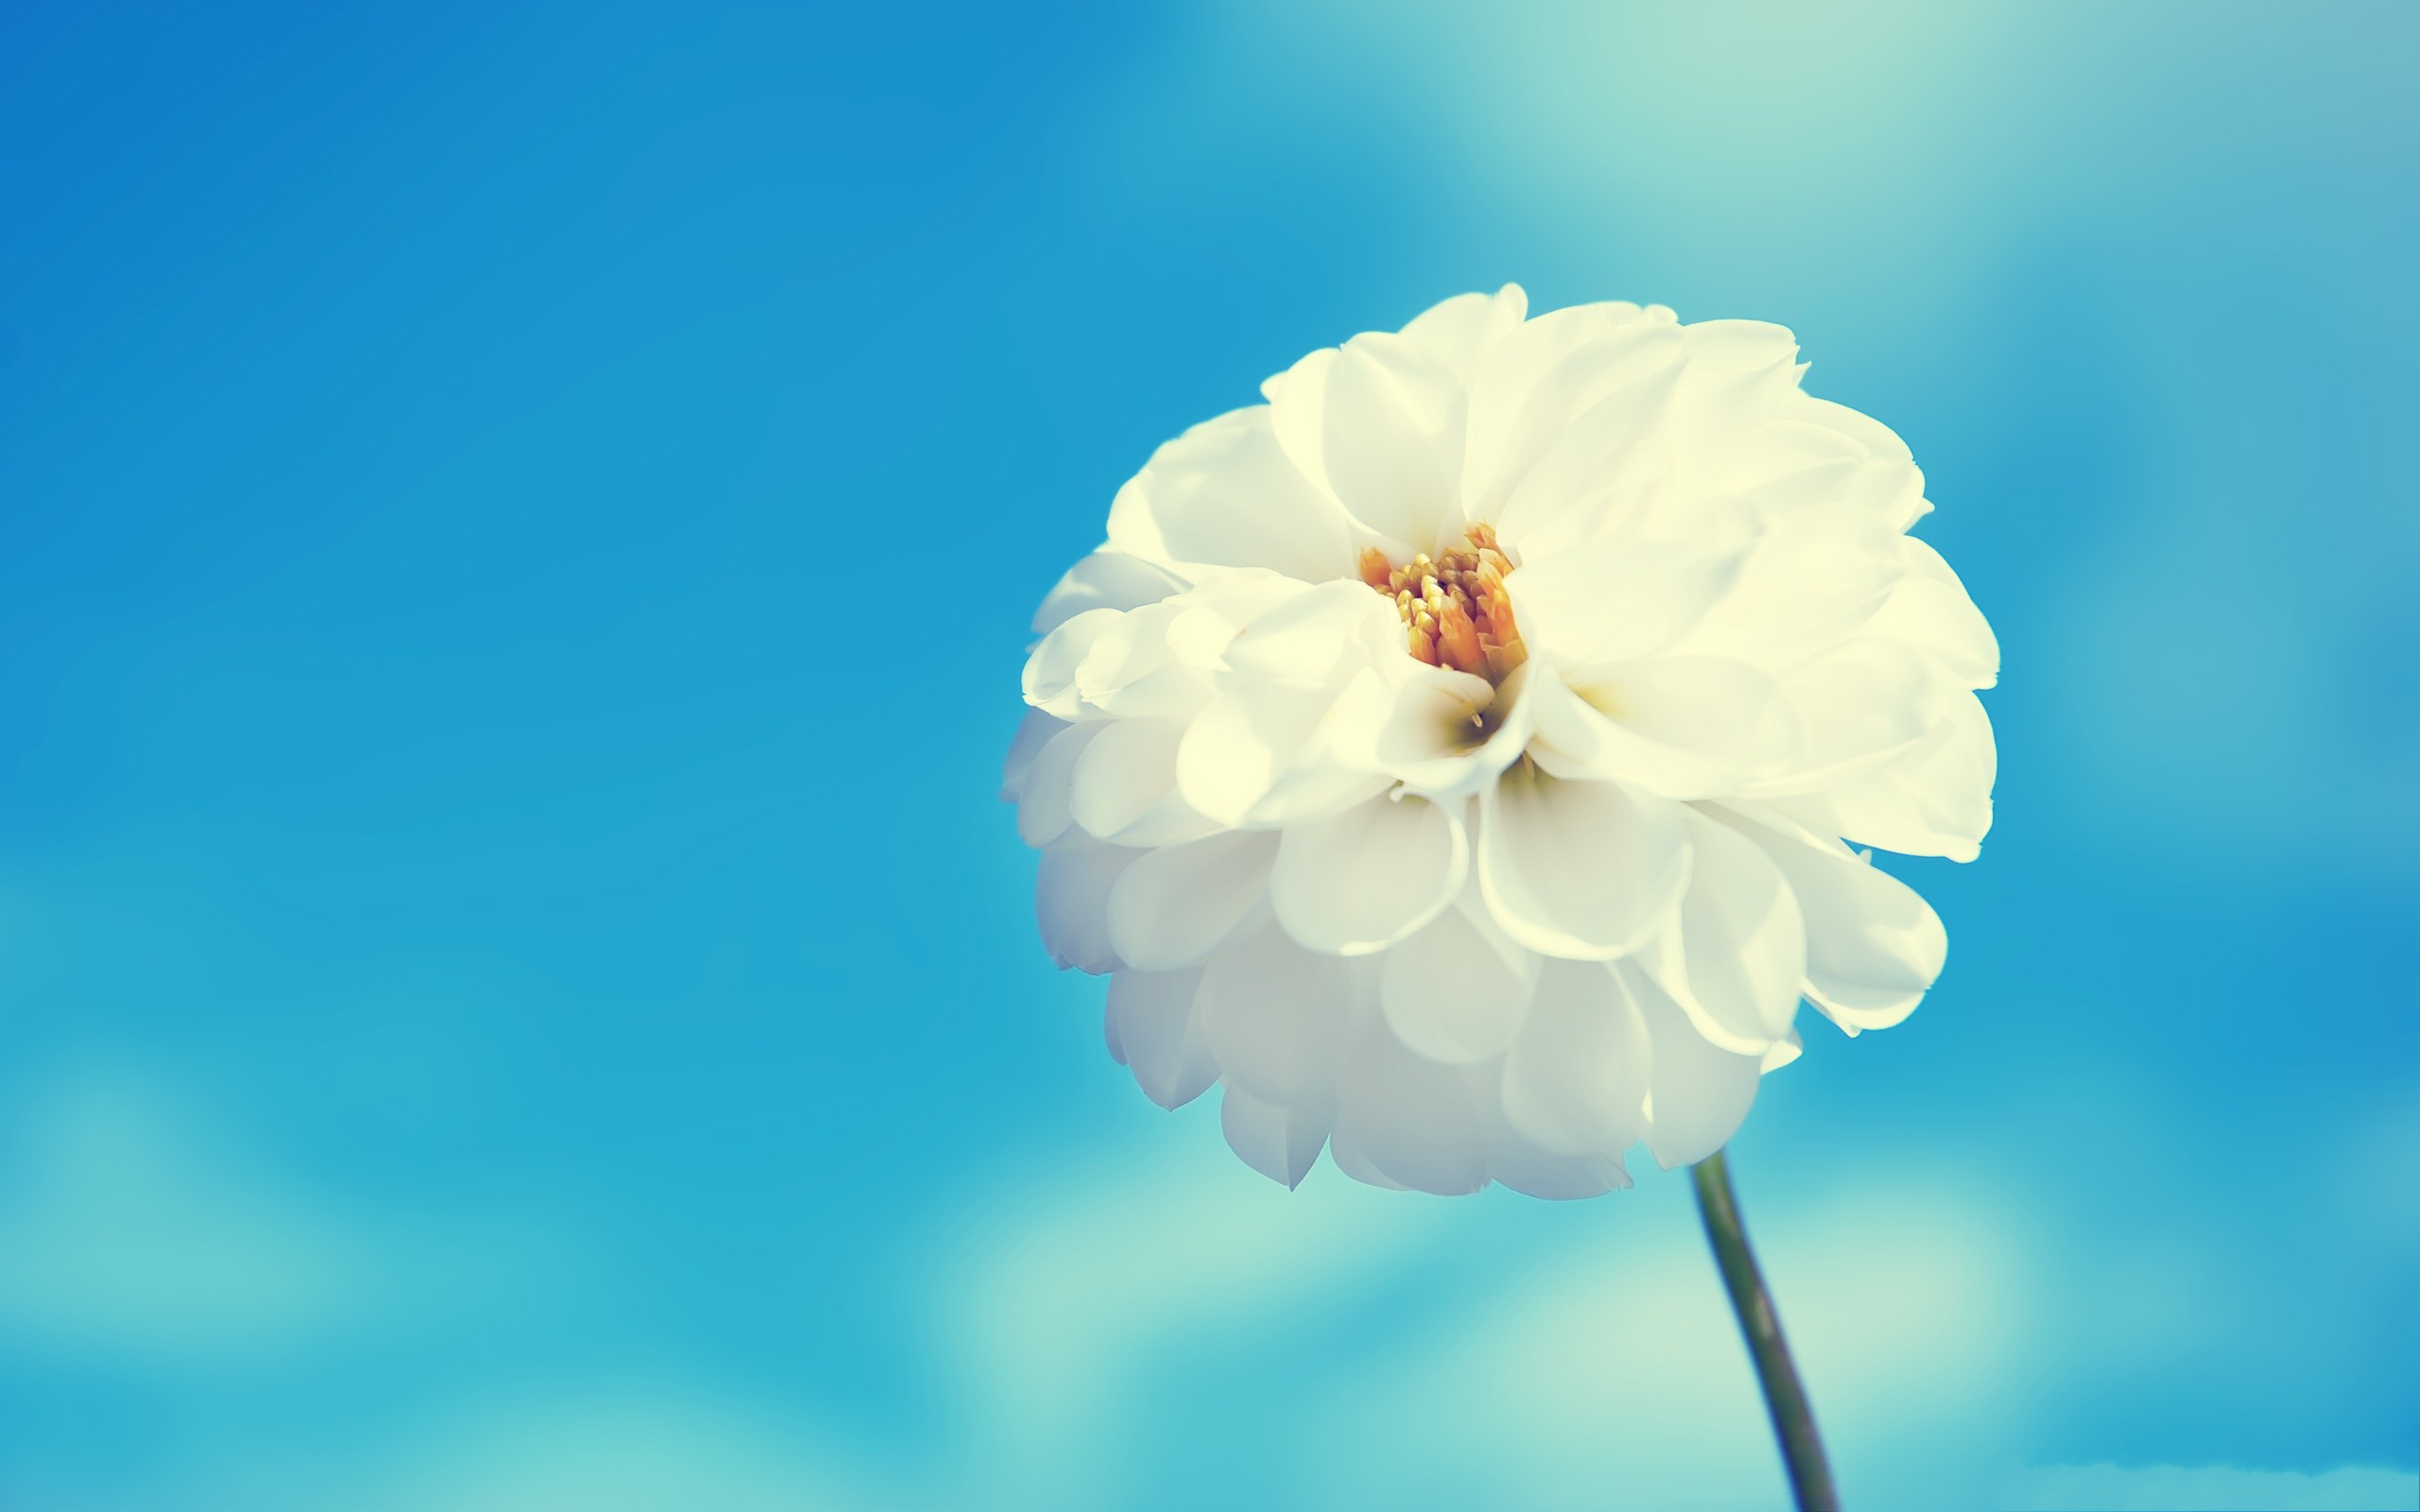 click to free download the wallpaper--Amazing Flowers Picture, White Flower Blooming in the Blue Sky 2560X1600 free wallpaper download